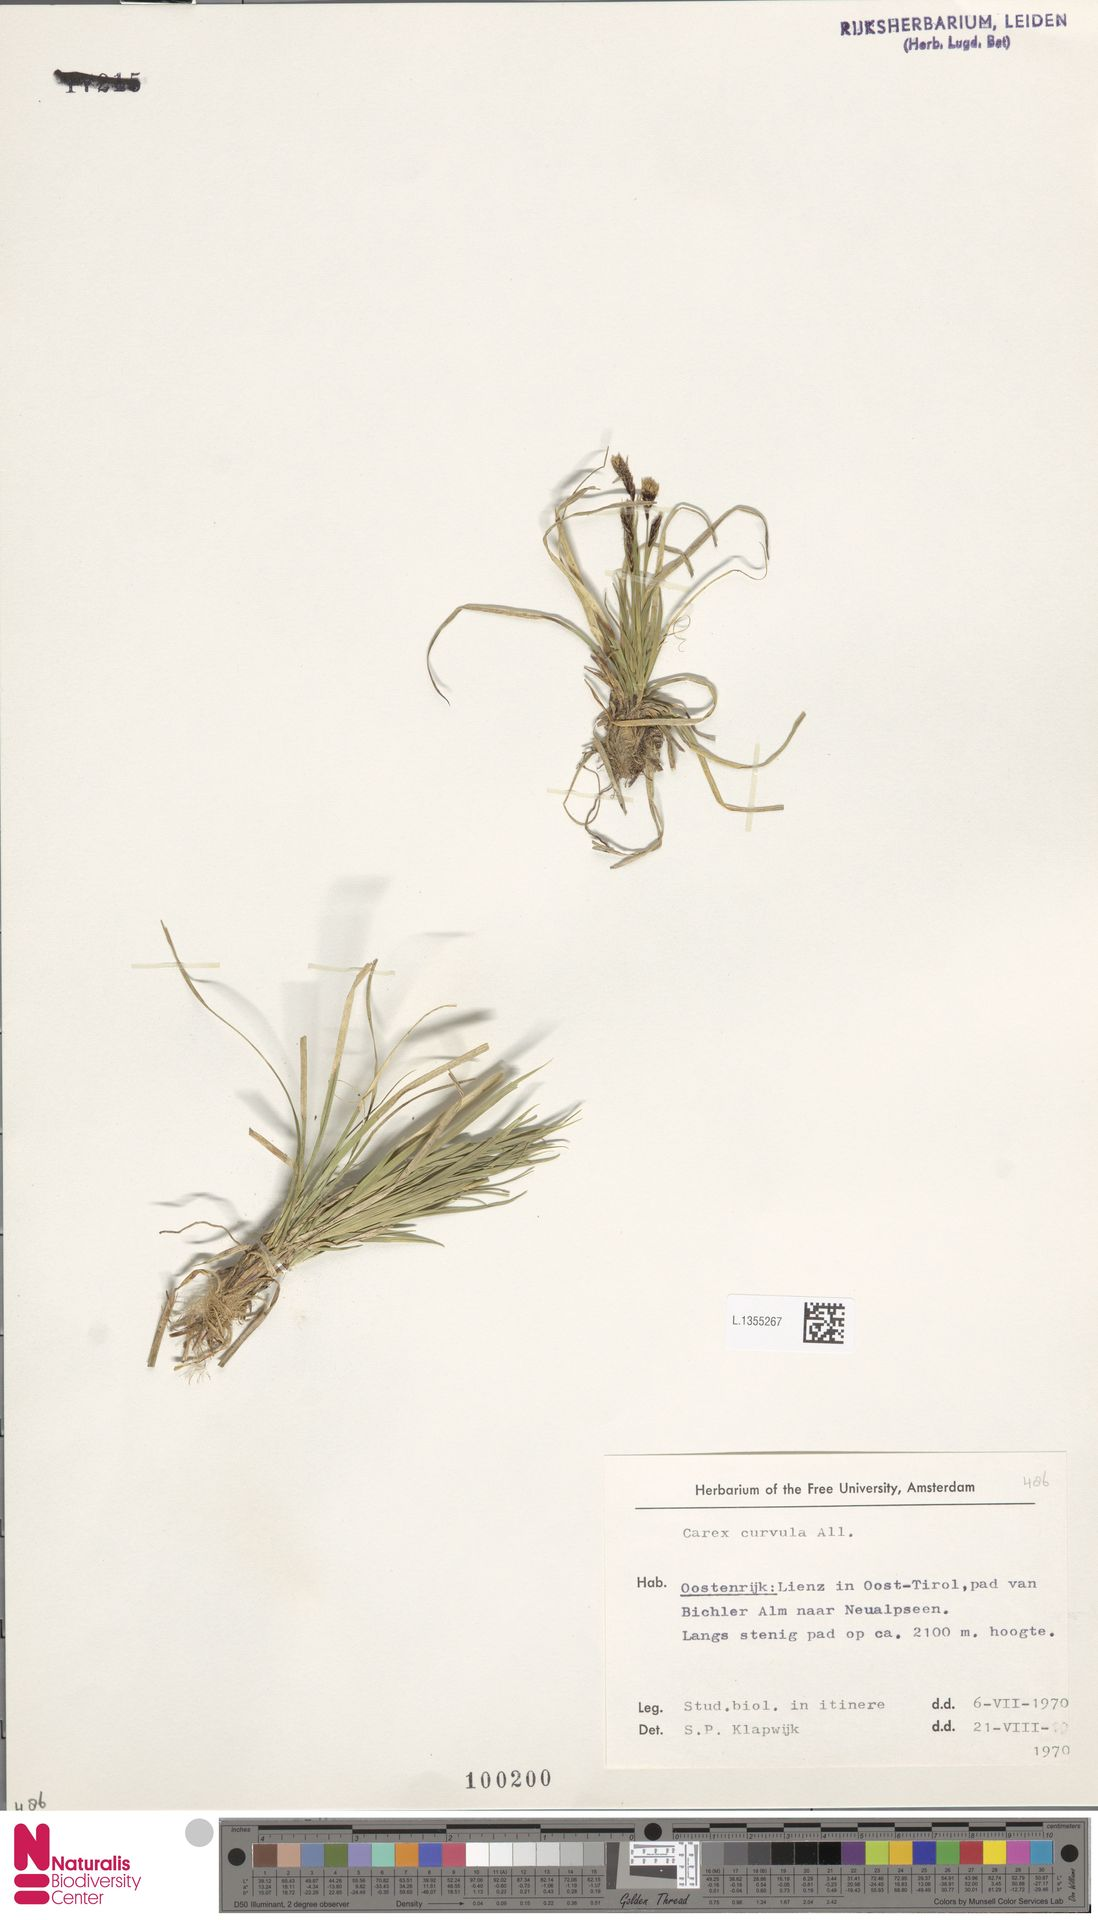 L.1355267 | Carex curvula All.